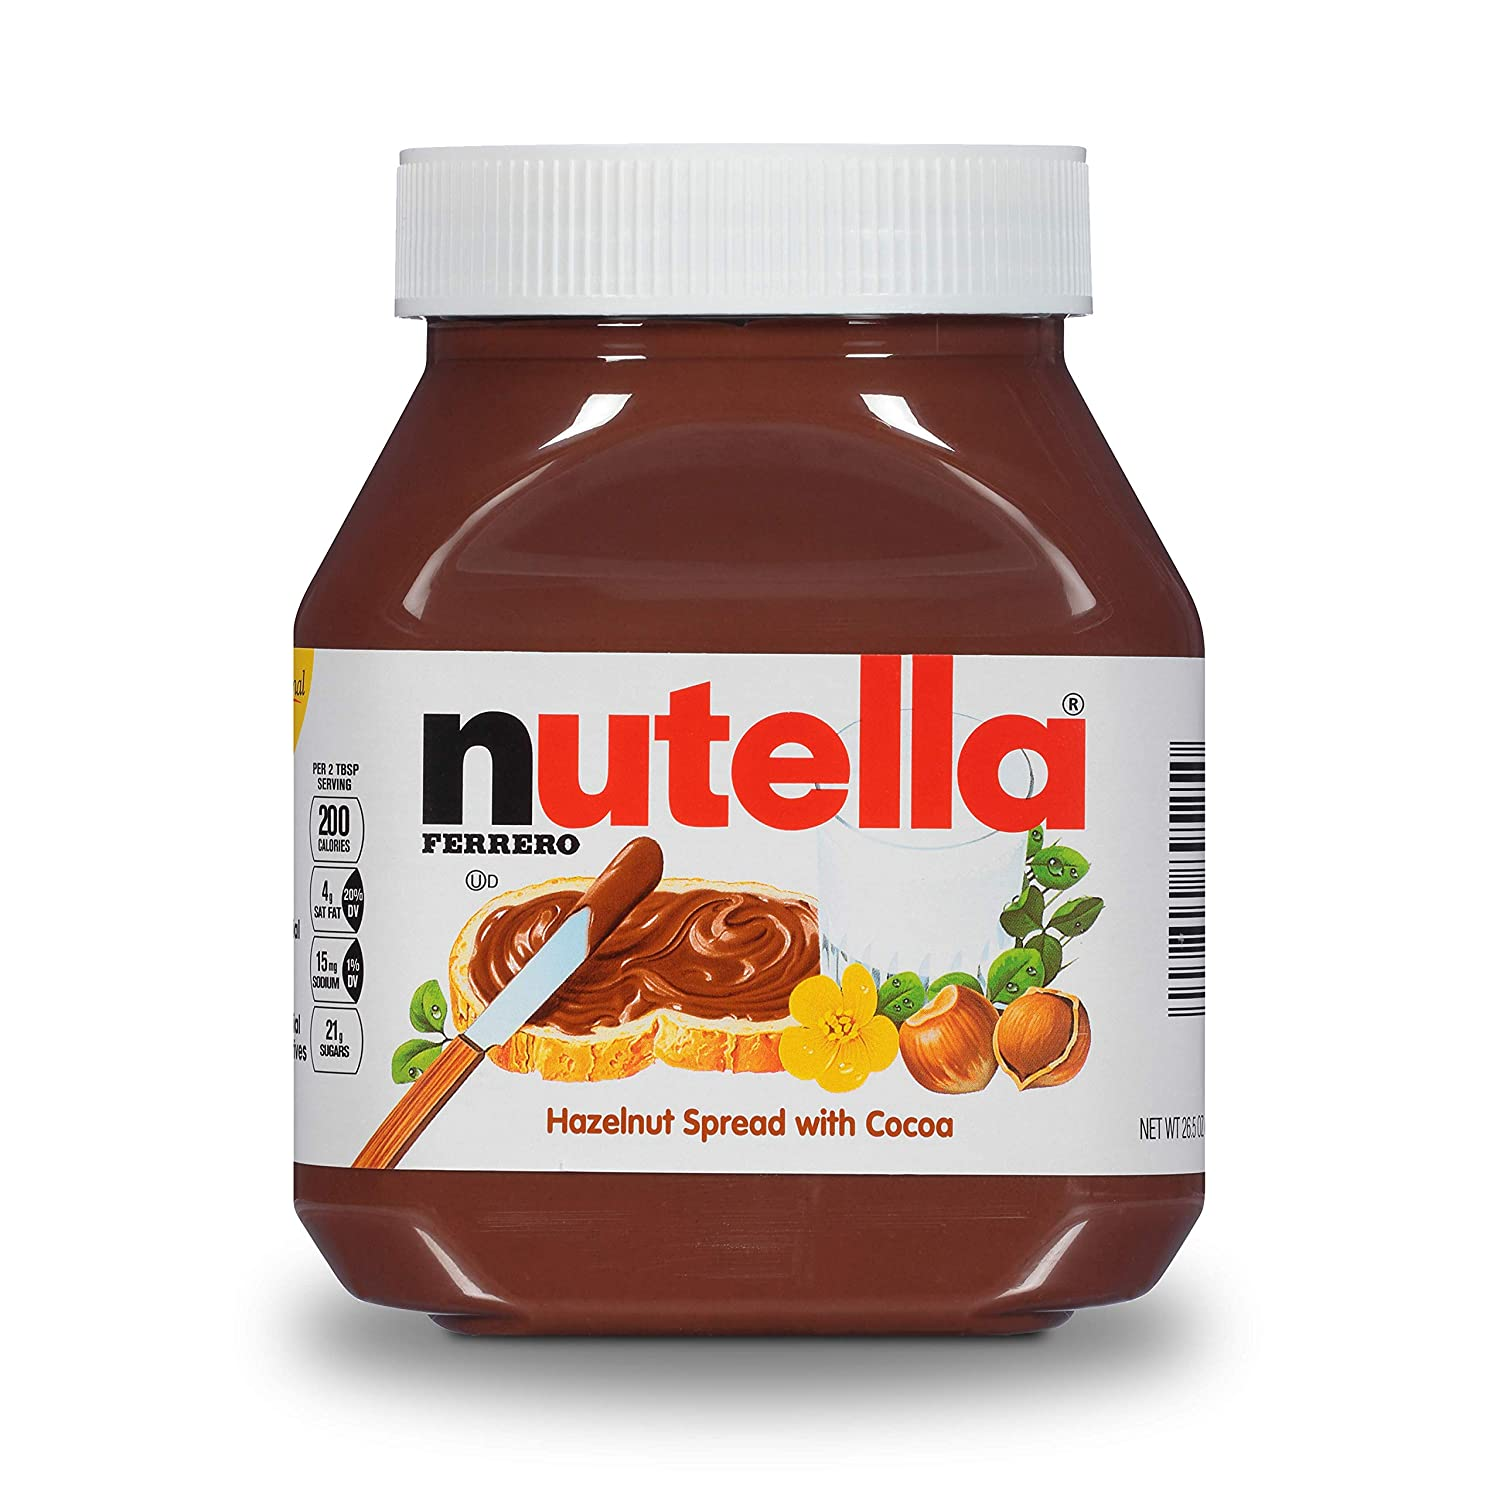 For 654/-(31% Off) Nutella Hazelnut Spread with Cocoa, 750g at Amazon India